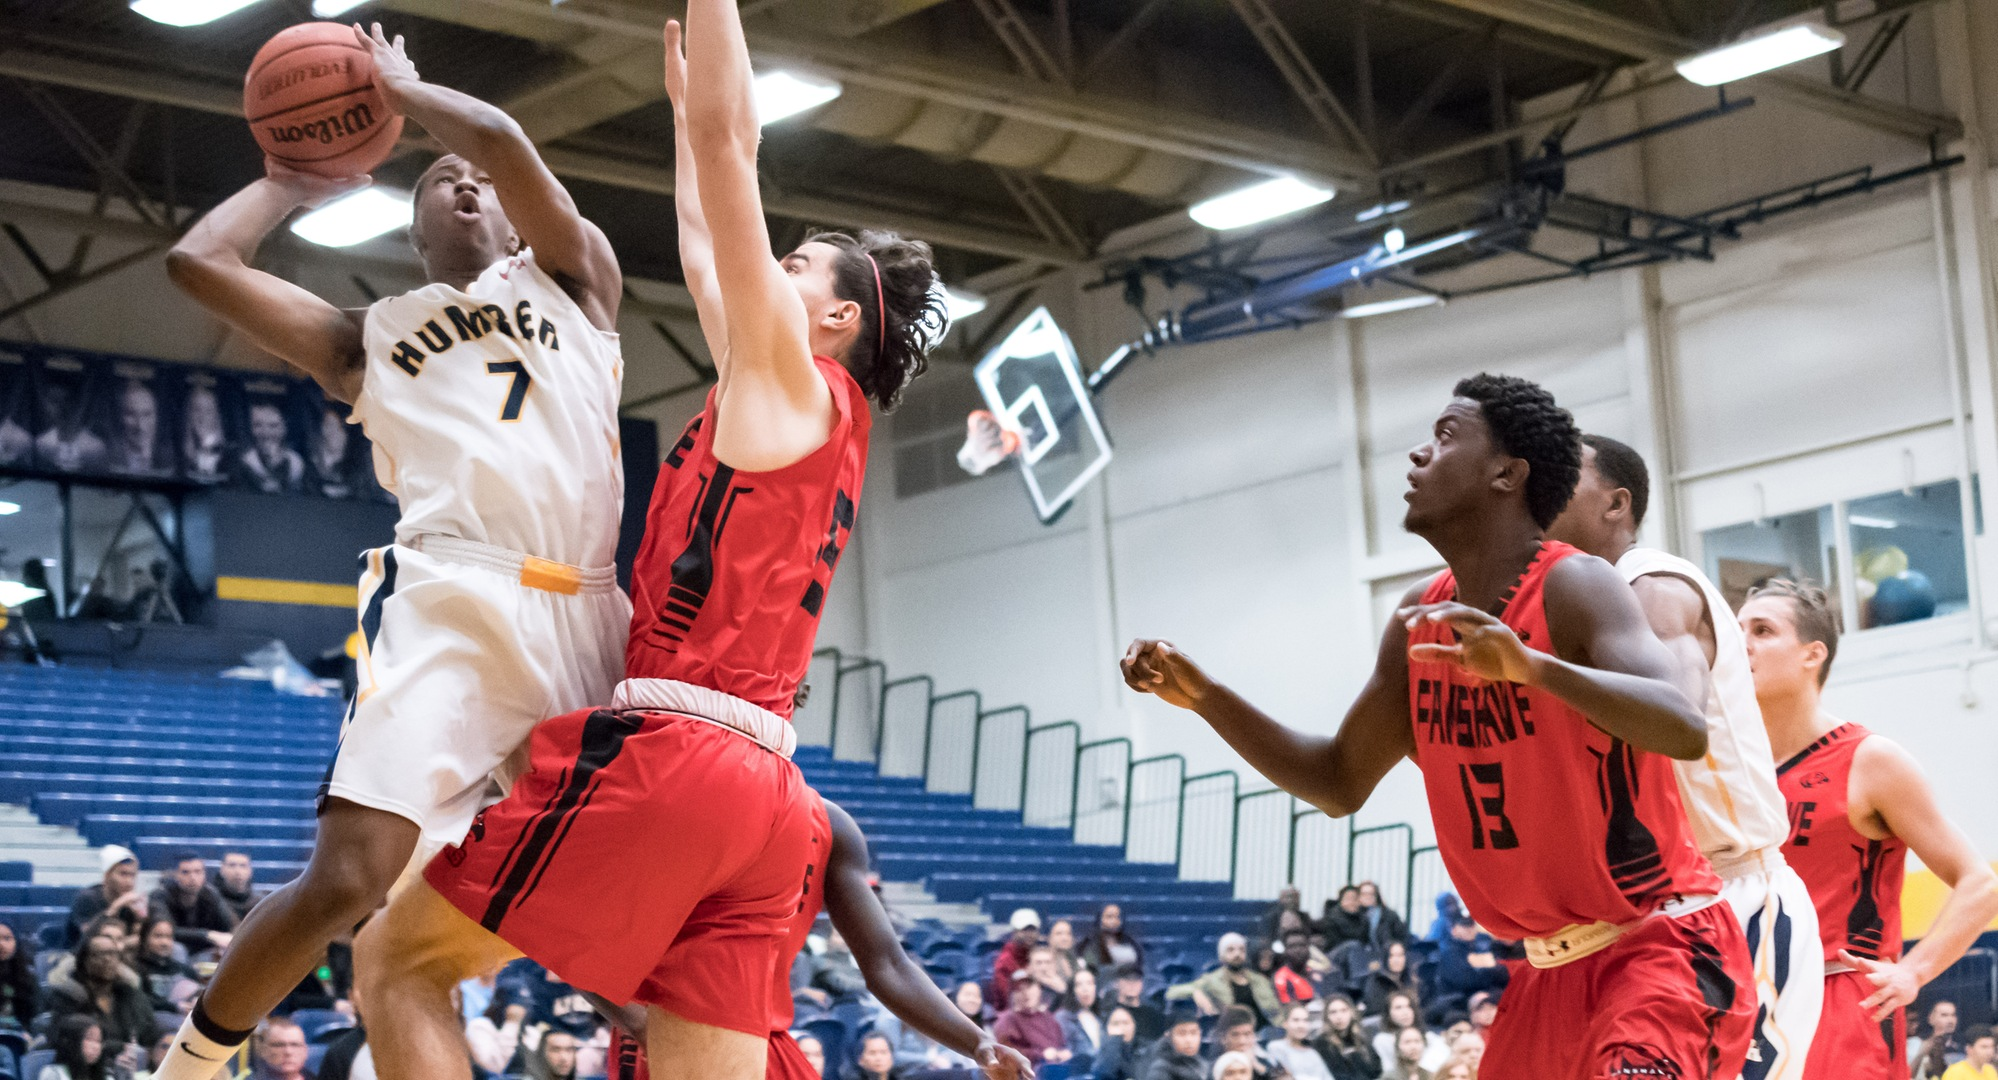 HUGE COMEBACK RESULTS IN 72-68 WIN AT HOME OVER FANSHAWE